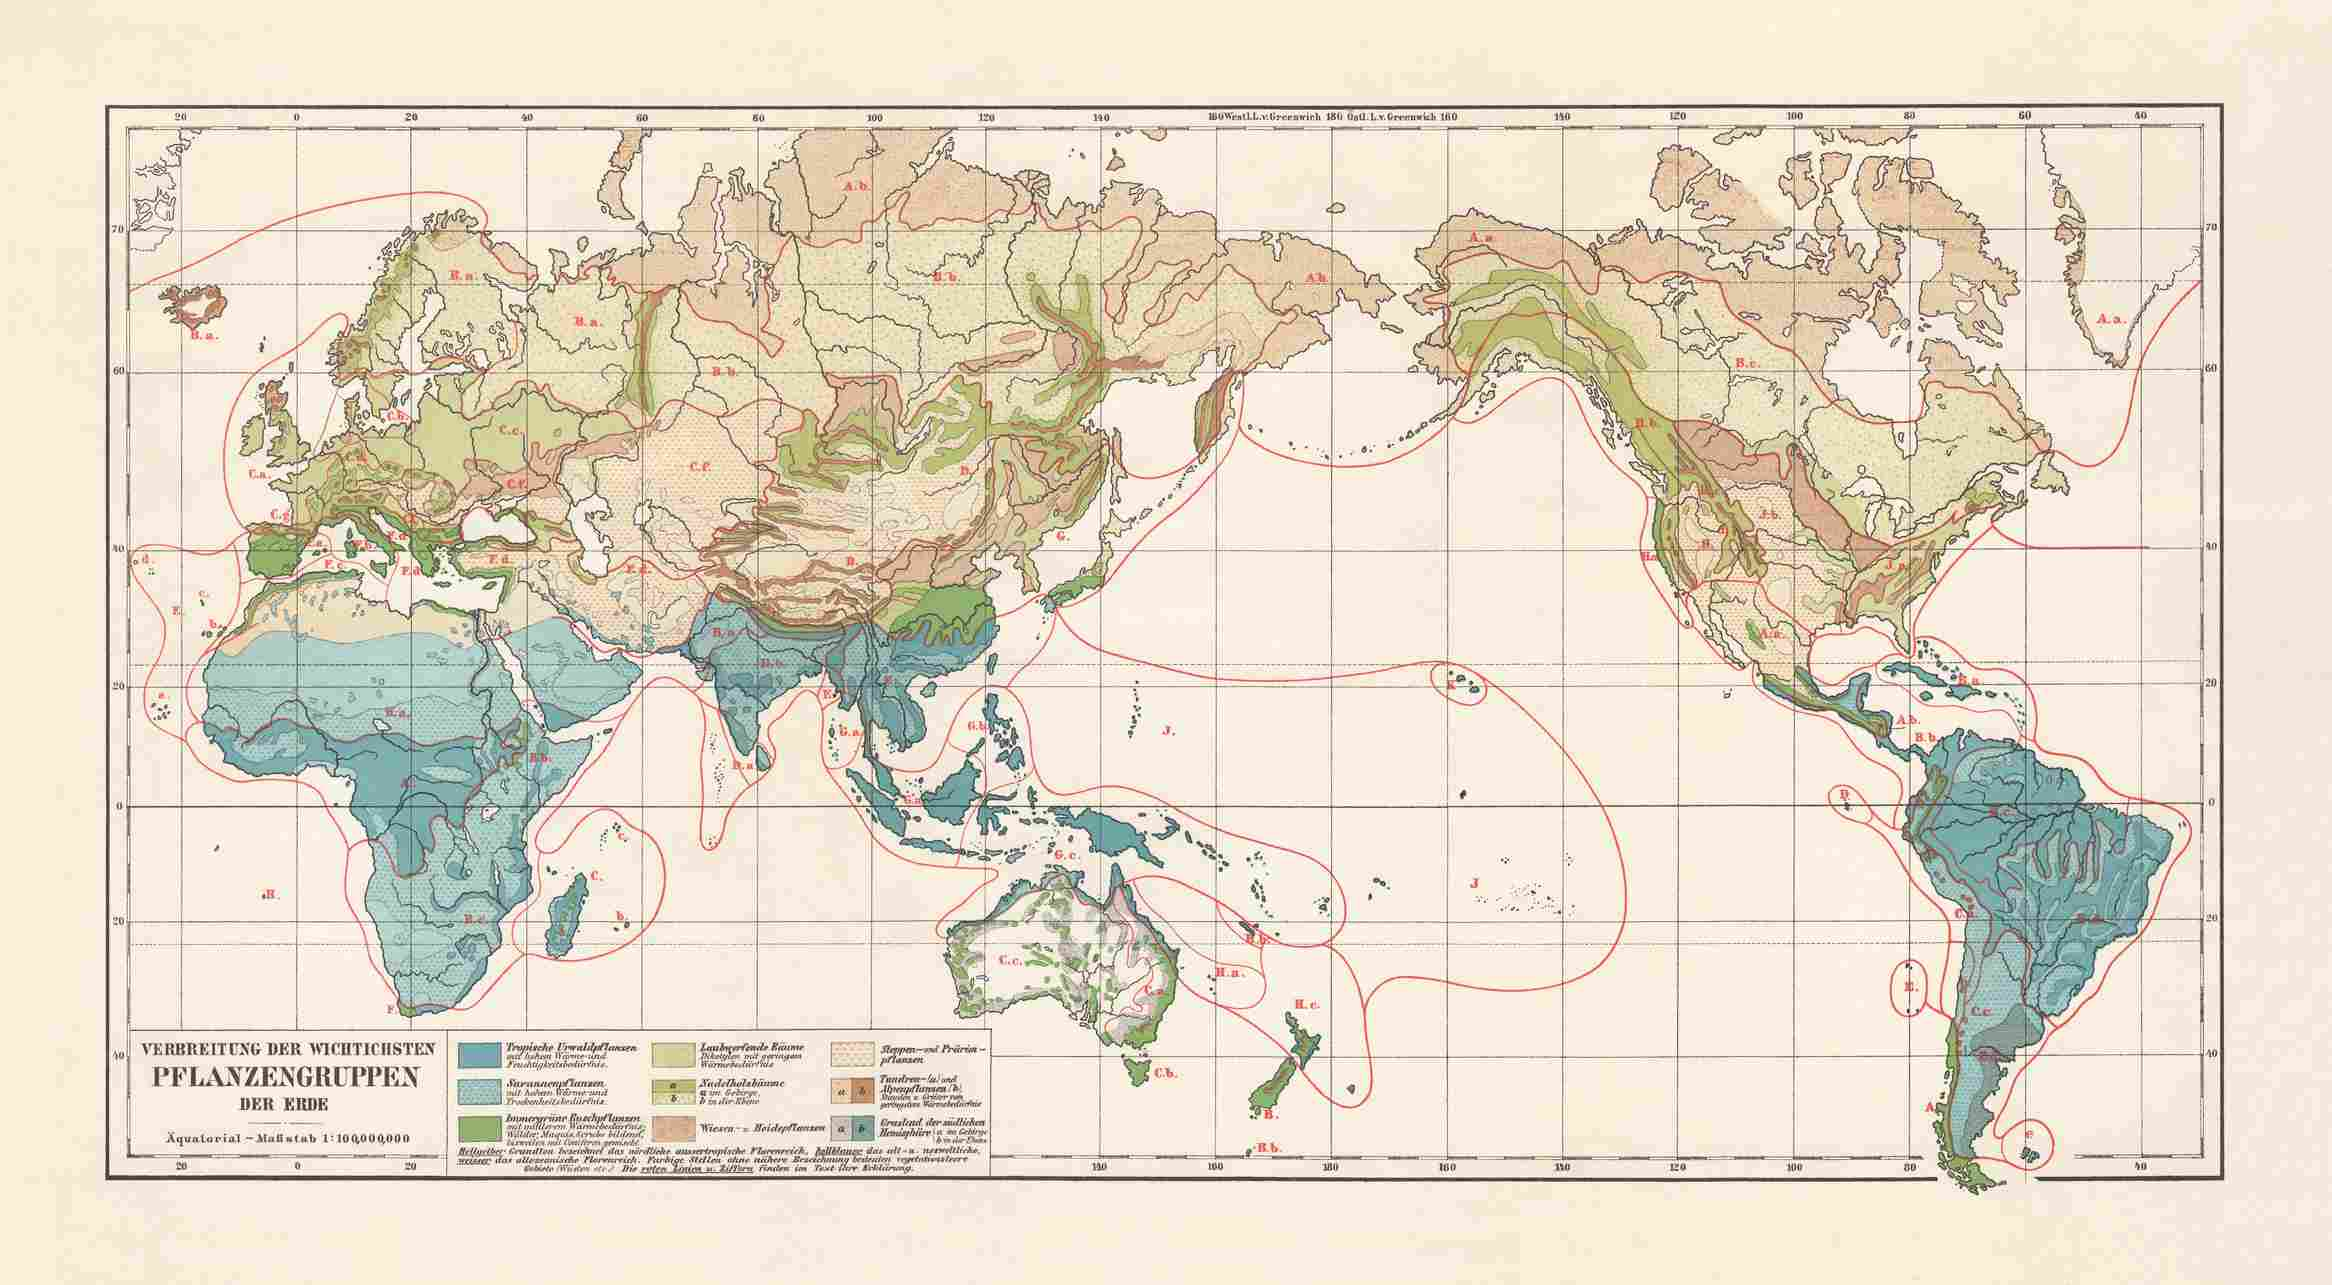 Types of Maps: Political, Climate, Elevation, and More on jharkhand india, varanasi india, world map india, north india, nashik india, leader of india, states of india, political world map, map showing india, geography of india, northern region of india, atlas of india, major rivers of india, maps of only india, provinces of india, where's india, political map kerala, political map government, bangalore india, maps for india,